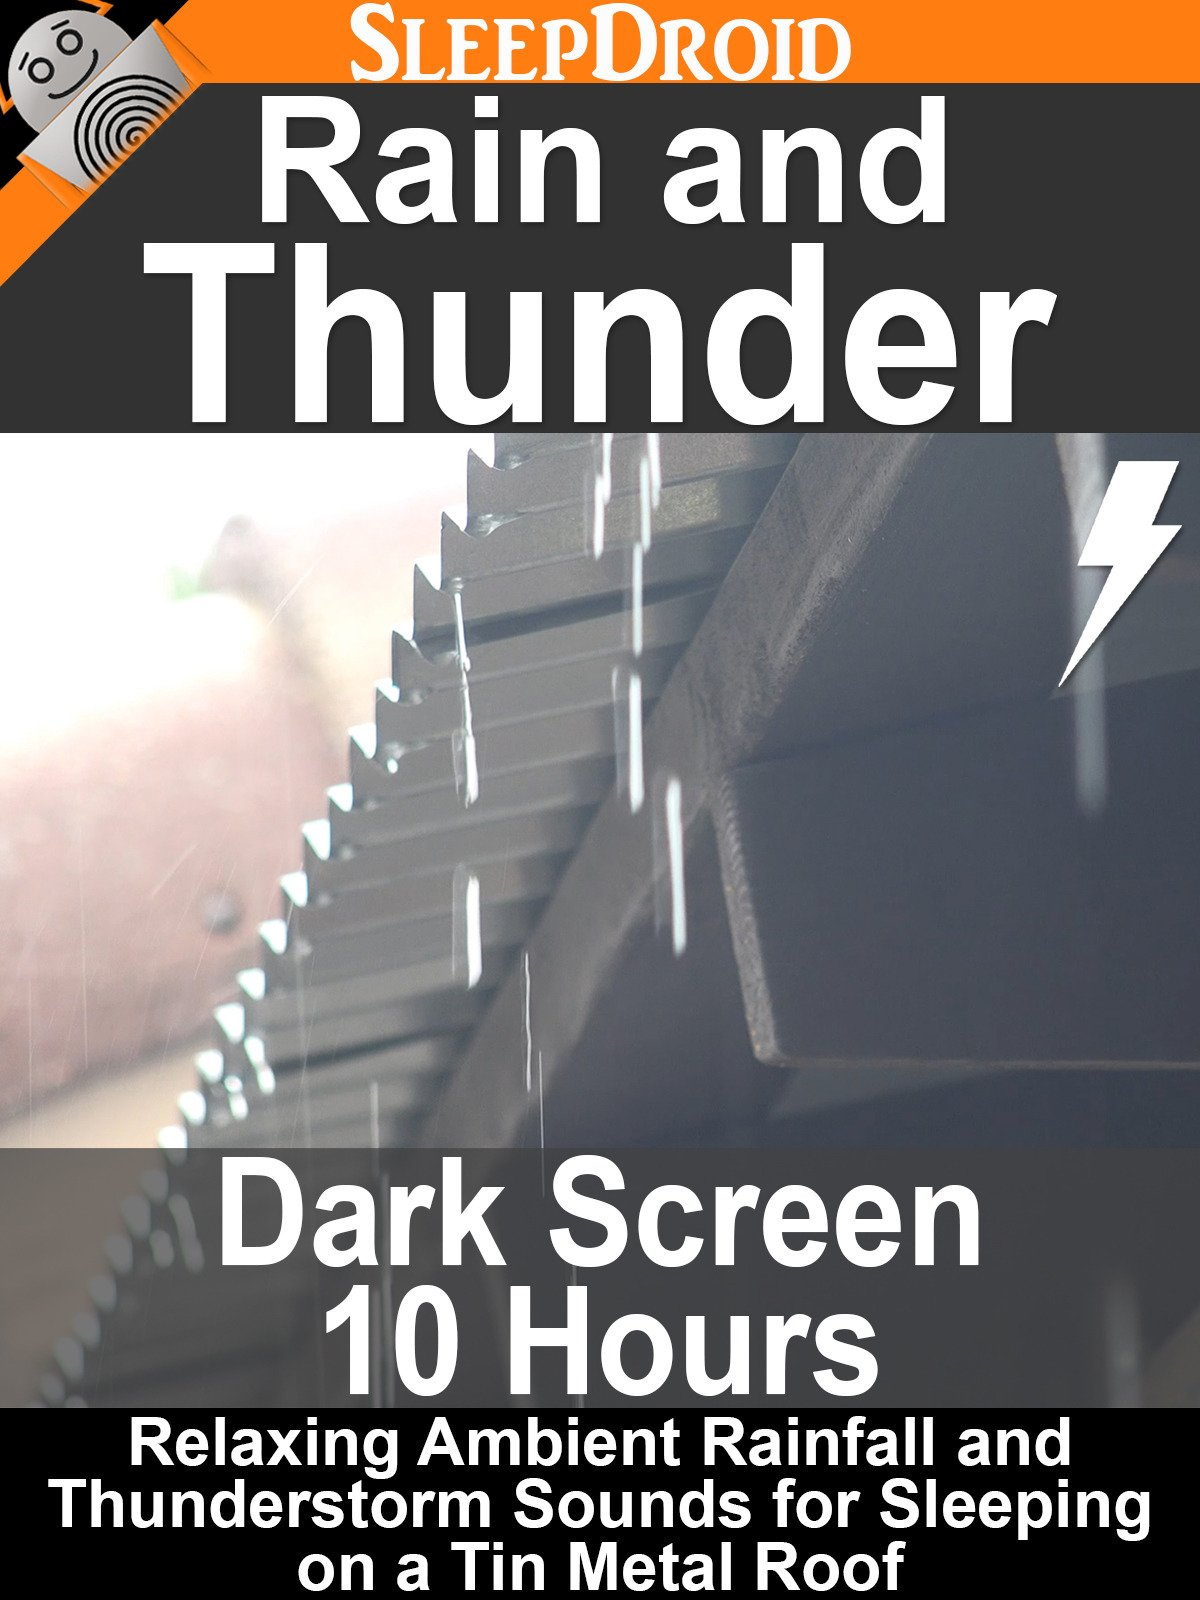 Rain and Thunder (Dark Screen 10 hours) Relaxing Ambient Rainfall and Thunderstorm Sounds for Sleeping on a Tin Metal Roof